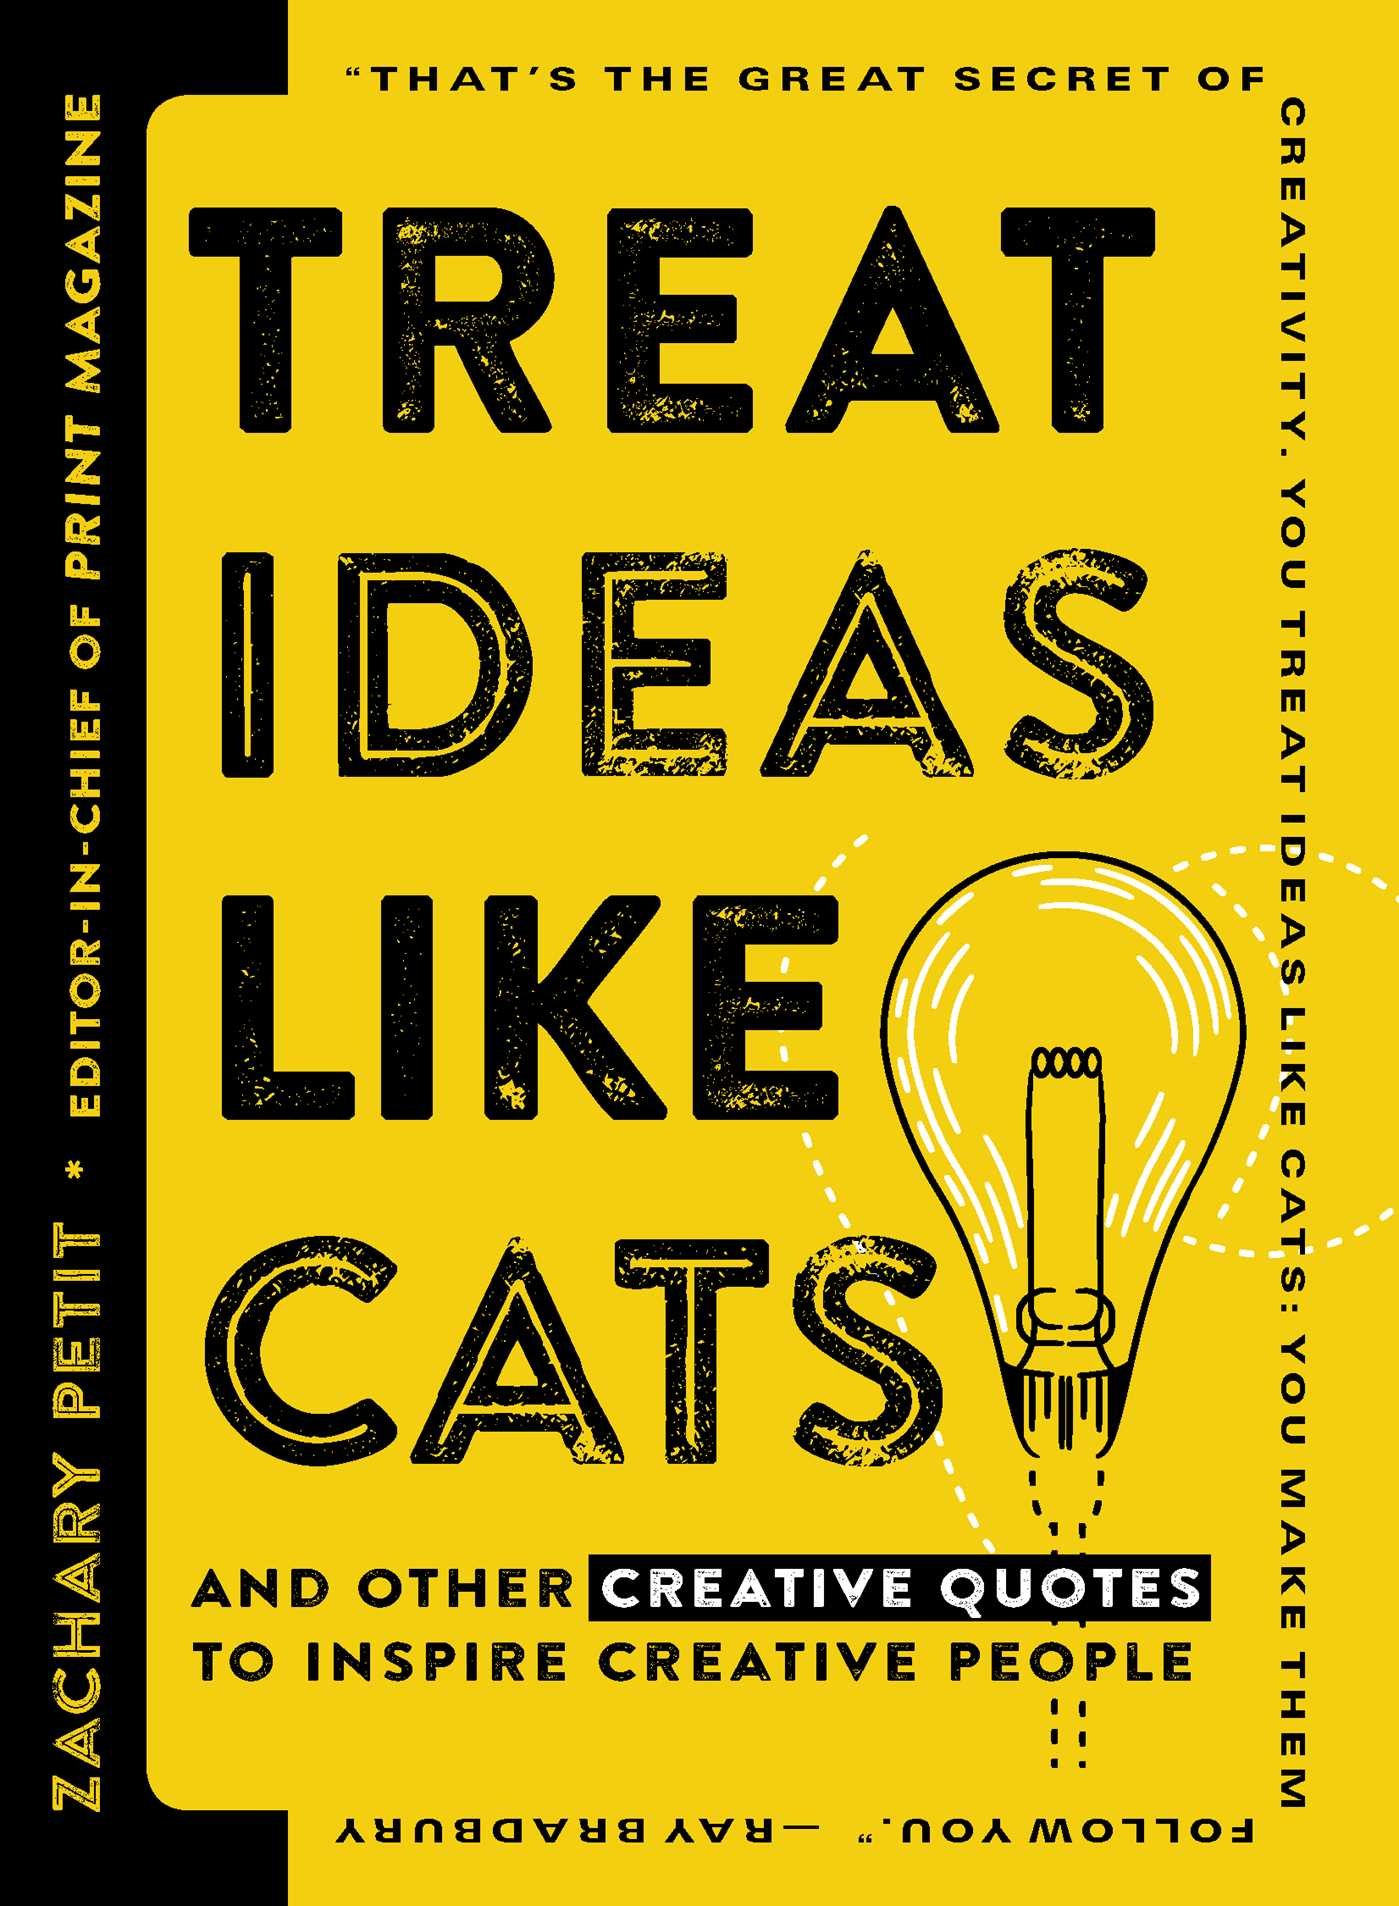 Be Creative Quotes | Treat Ideas Like Cats And Other Creative Quotes To Inspire Creative